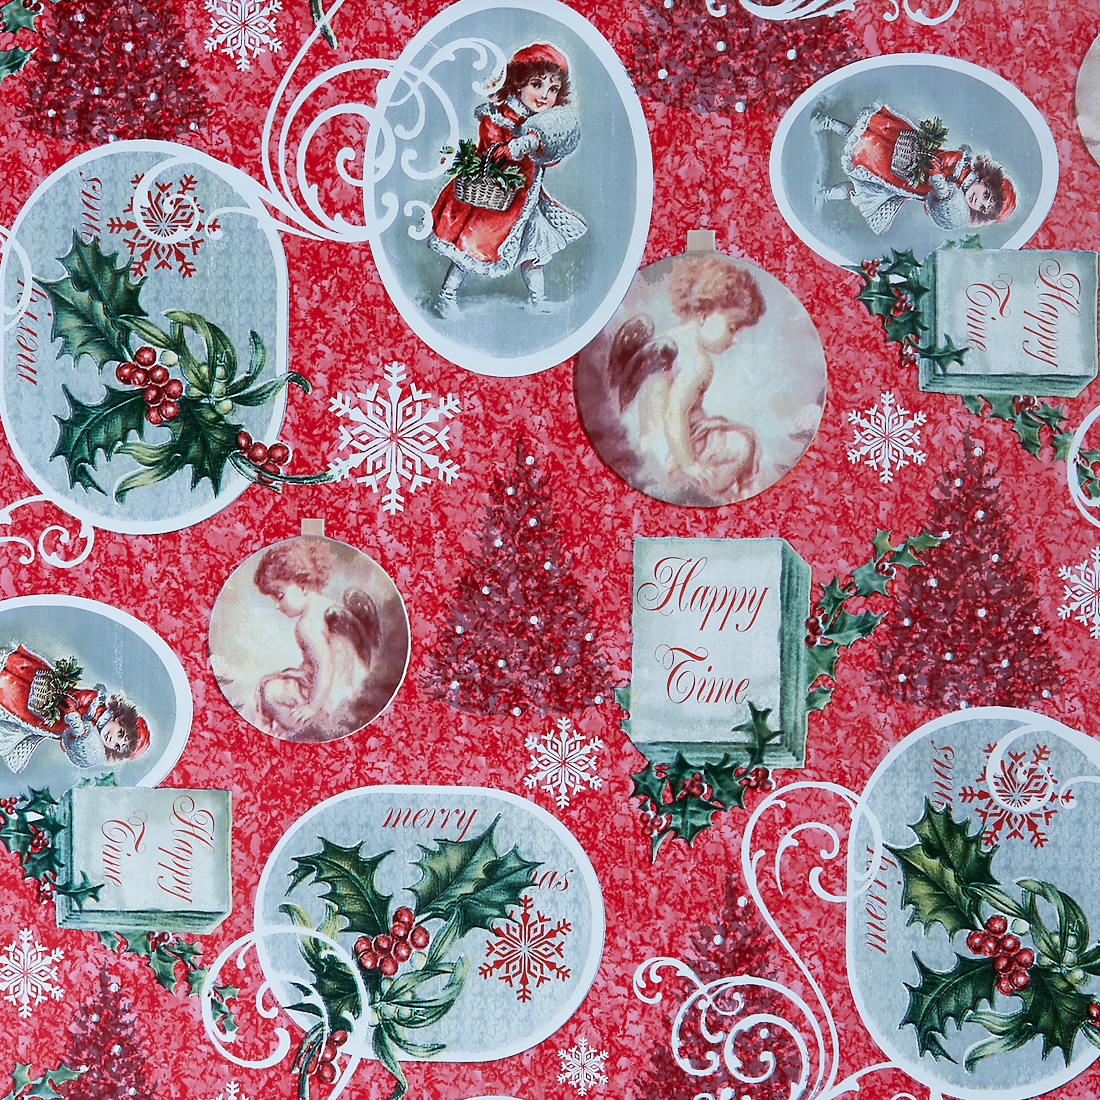 Happy Time Christmas Oil cloth